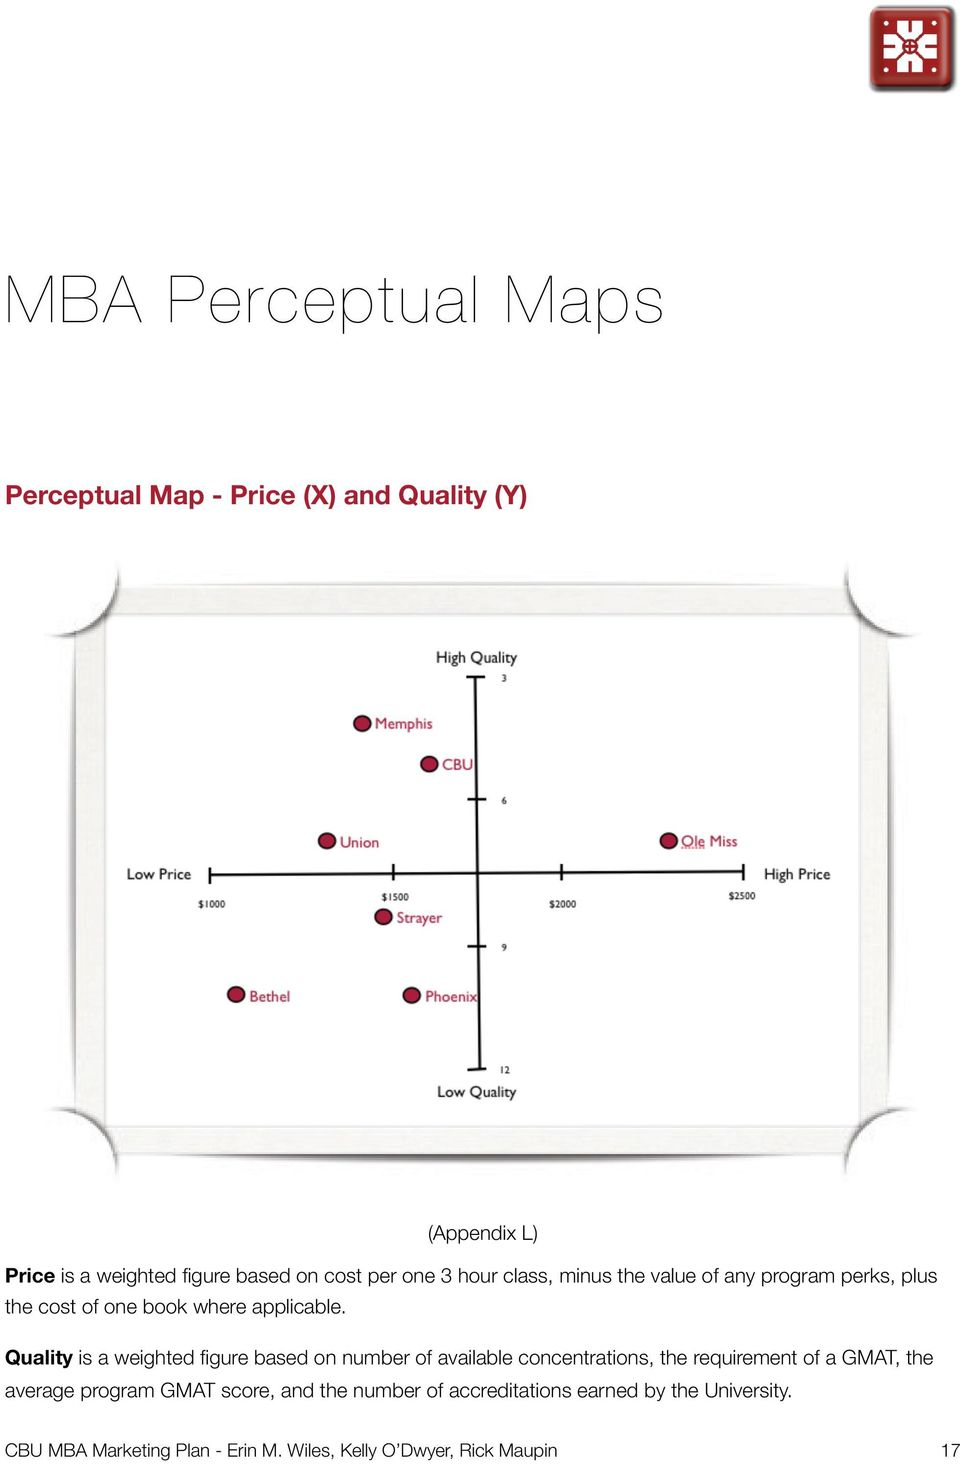 Quality is a weighted figure based on number of available concentrations, the requirement of a GMAT, the average program